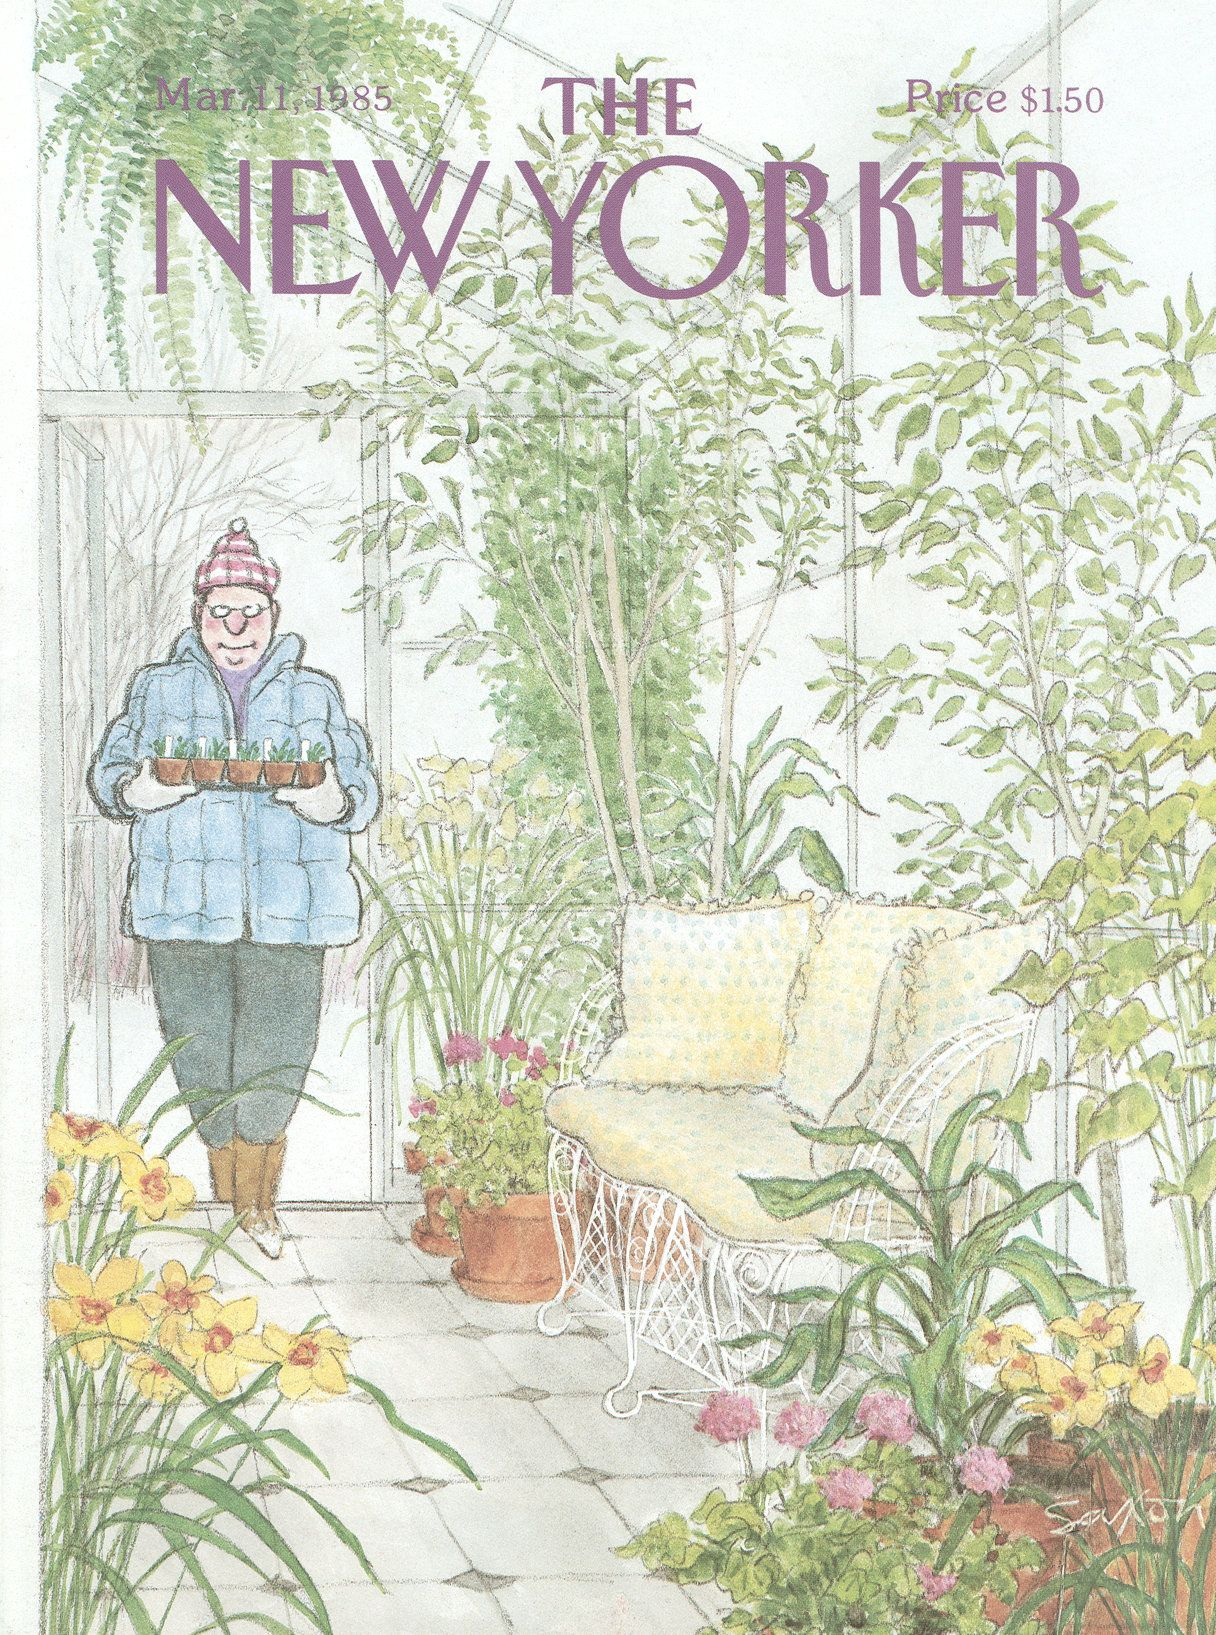 The New Yorker - Monday, March 11, 1985 - Issue # 3134 - Vol. 61 - N° 3 - Cover by : Charles Saxon